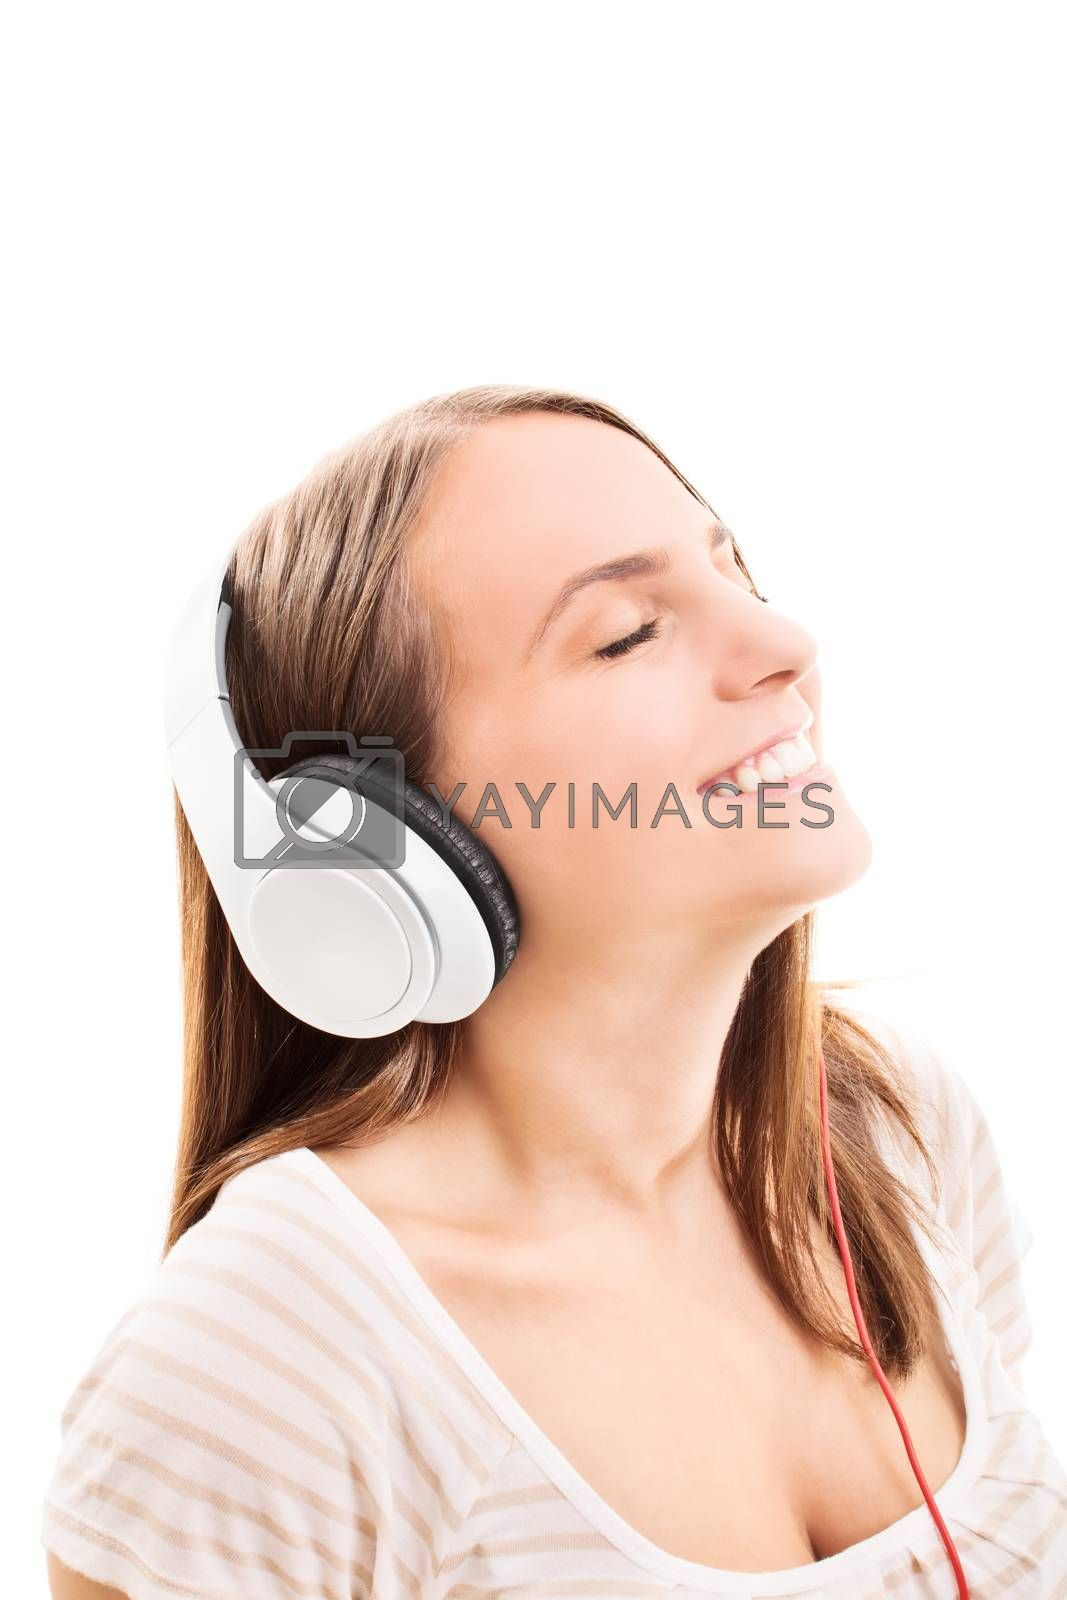 Beautiful young girl with headphones listening to music, isolated on white background.